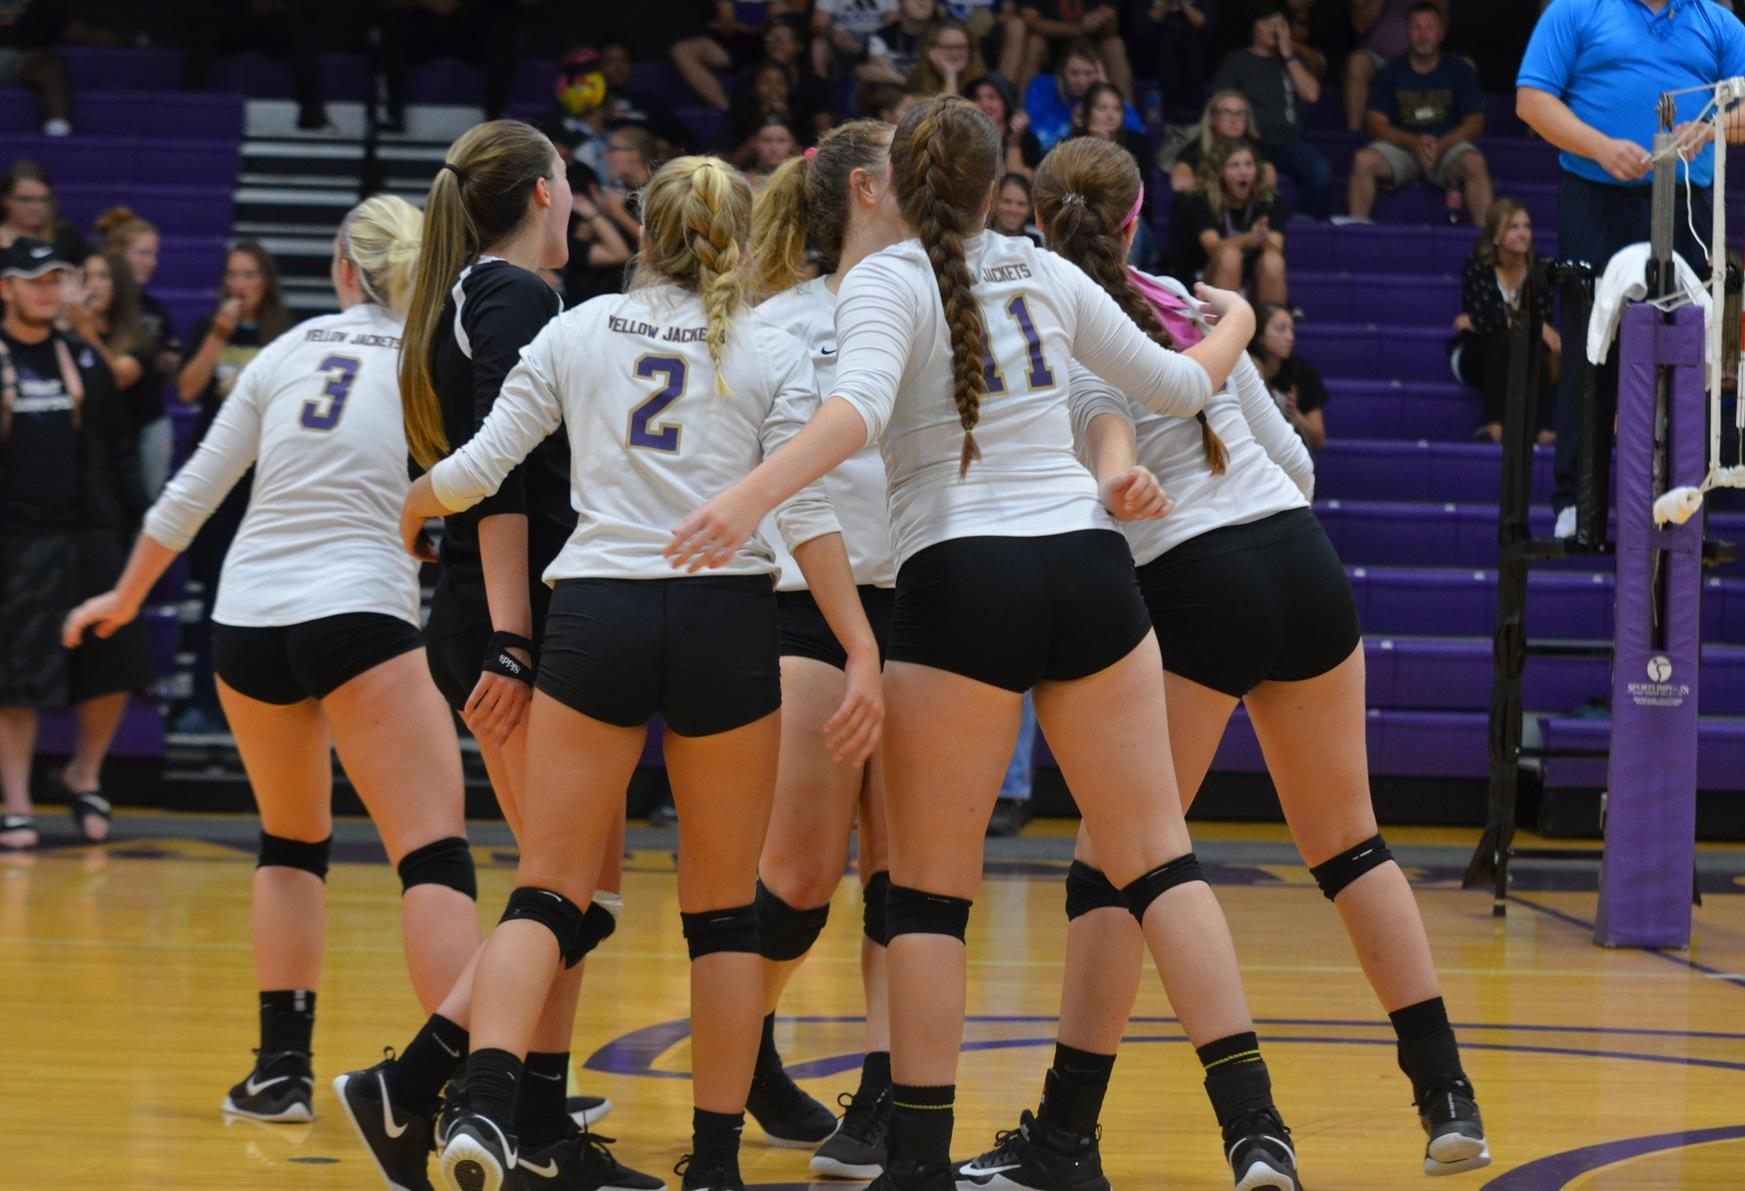 Yellow Jackets Fall in Five Set Thriller